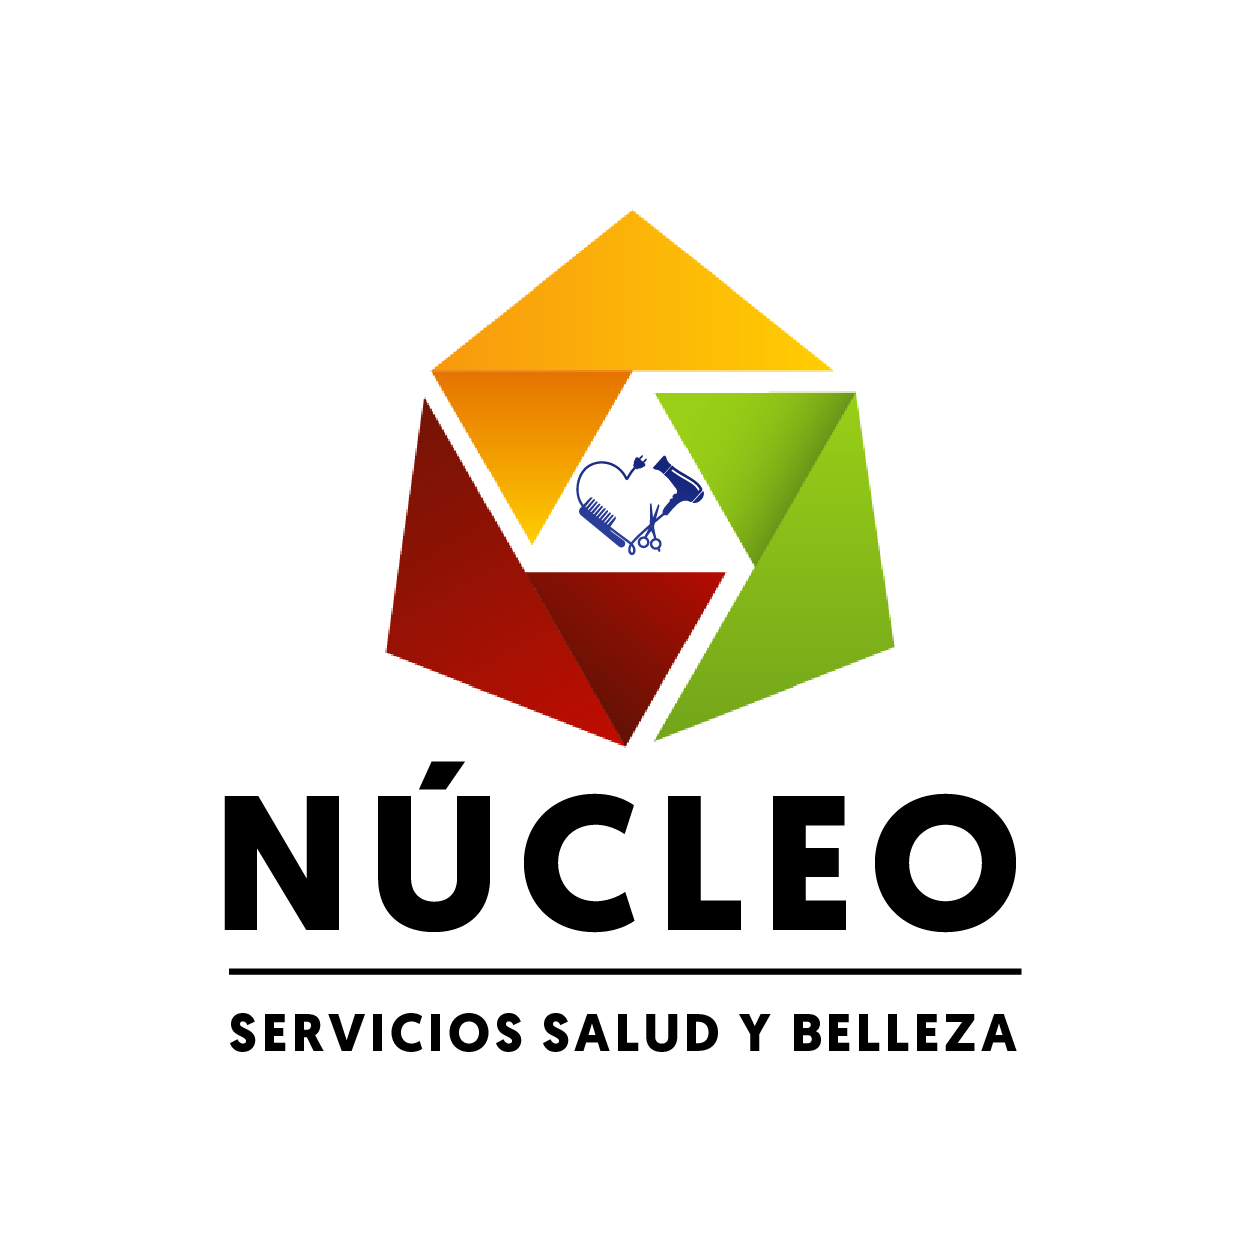 Logo_Nucleo_Salud_Belleza-01_3_1.png